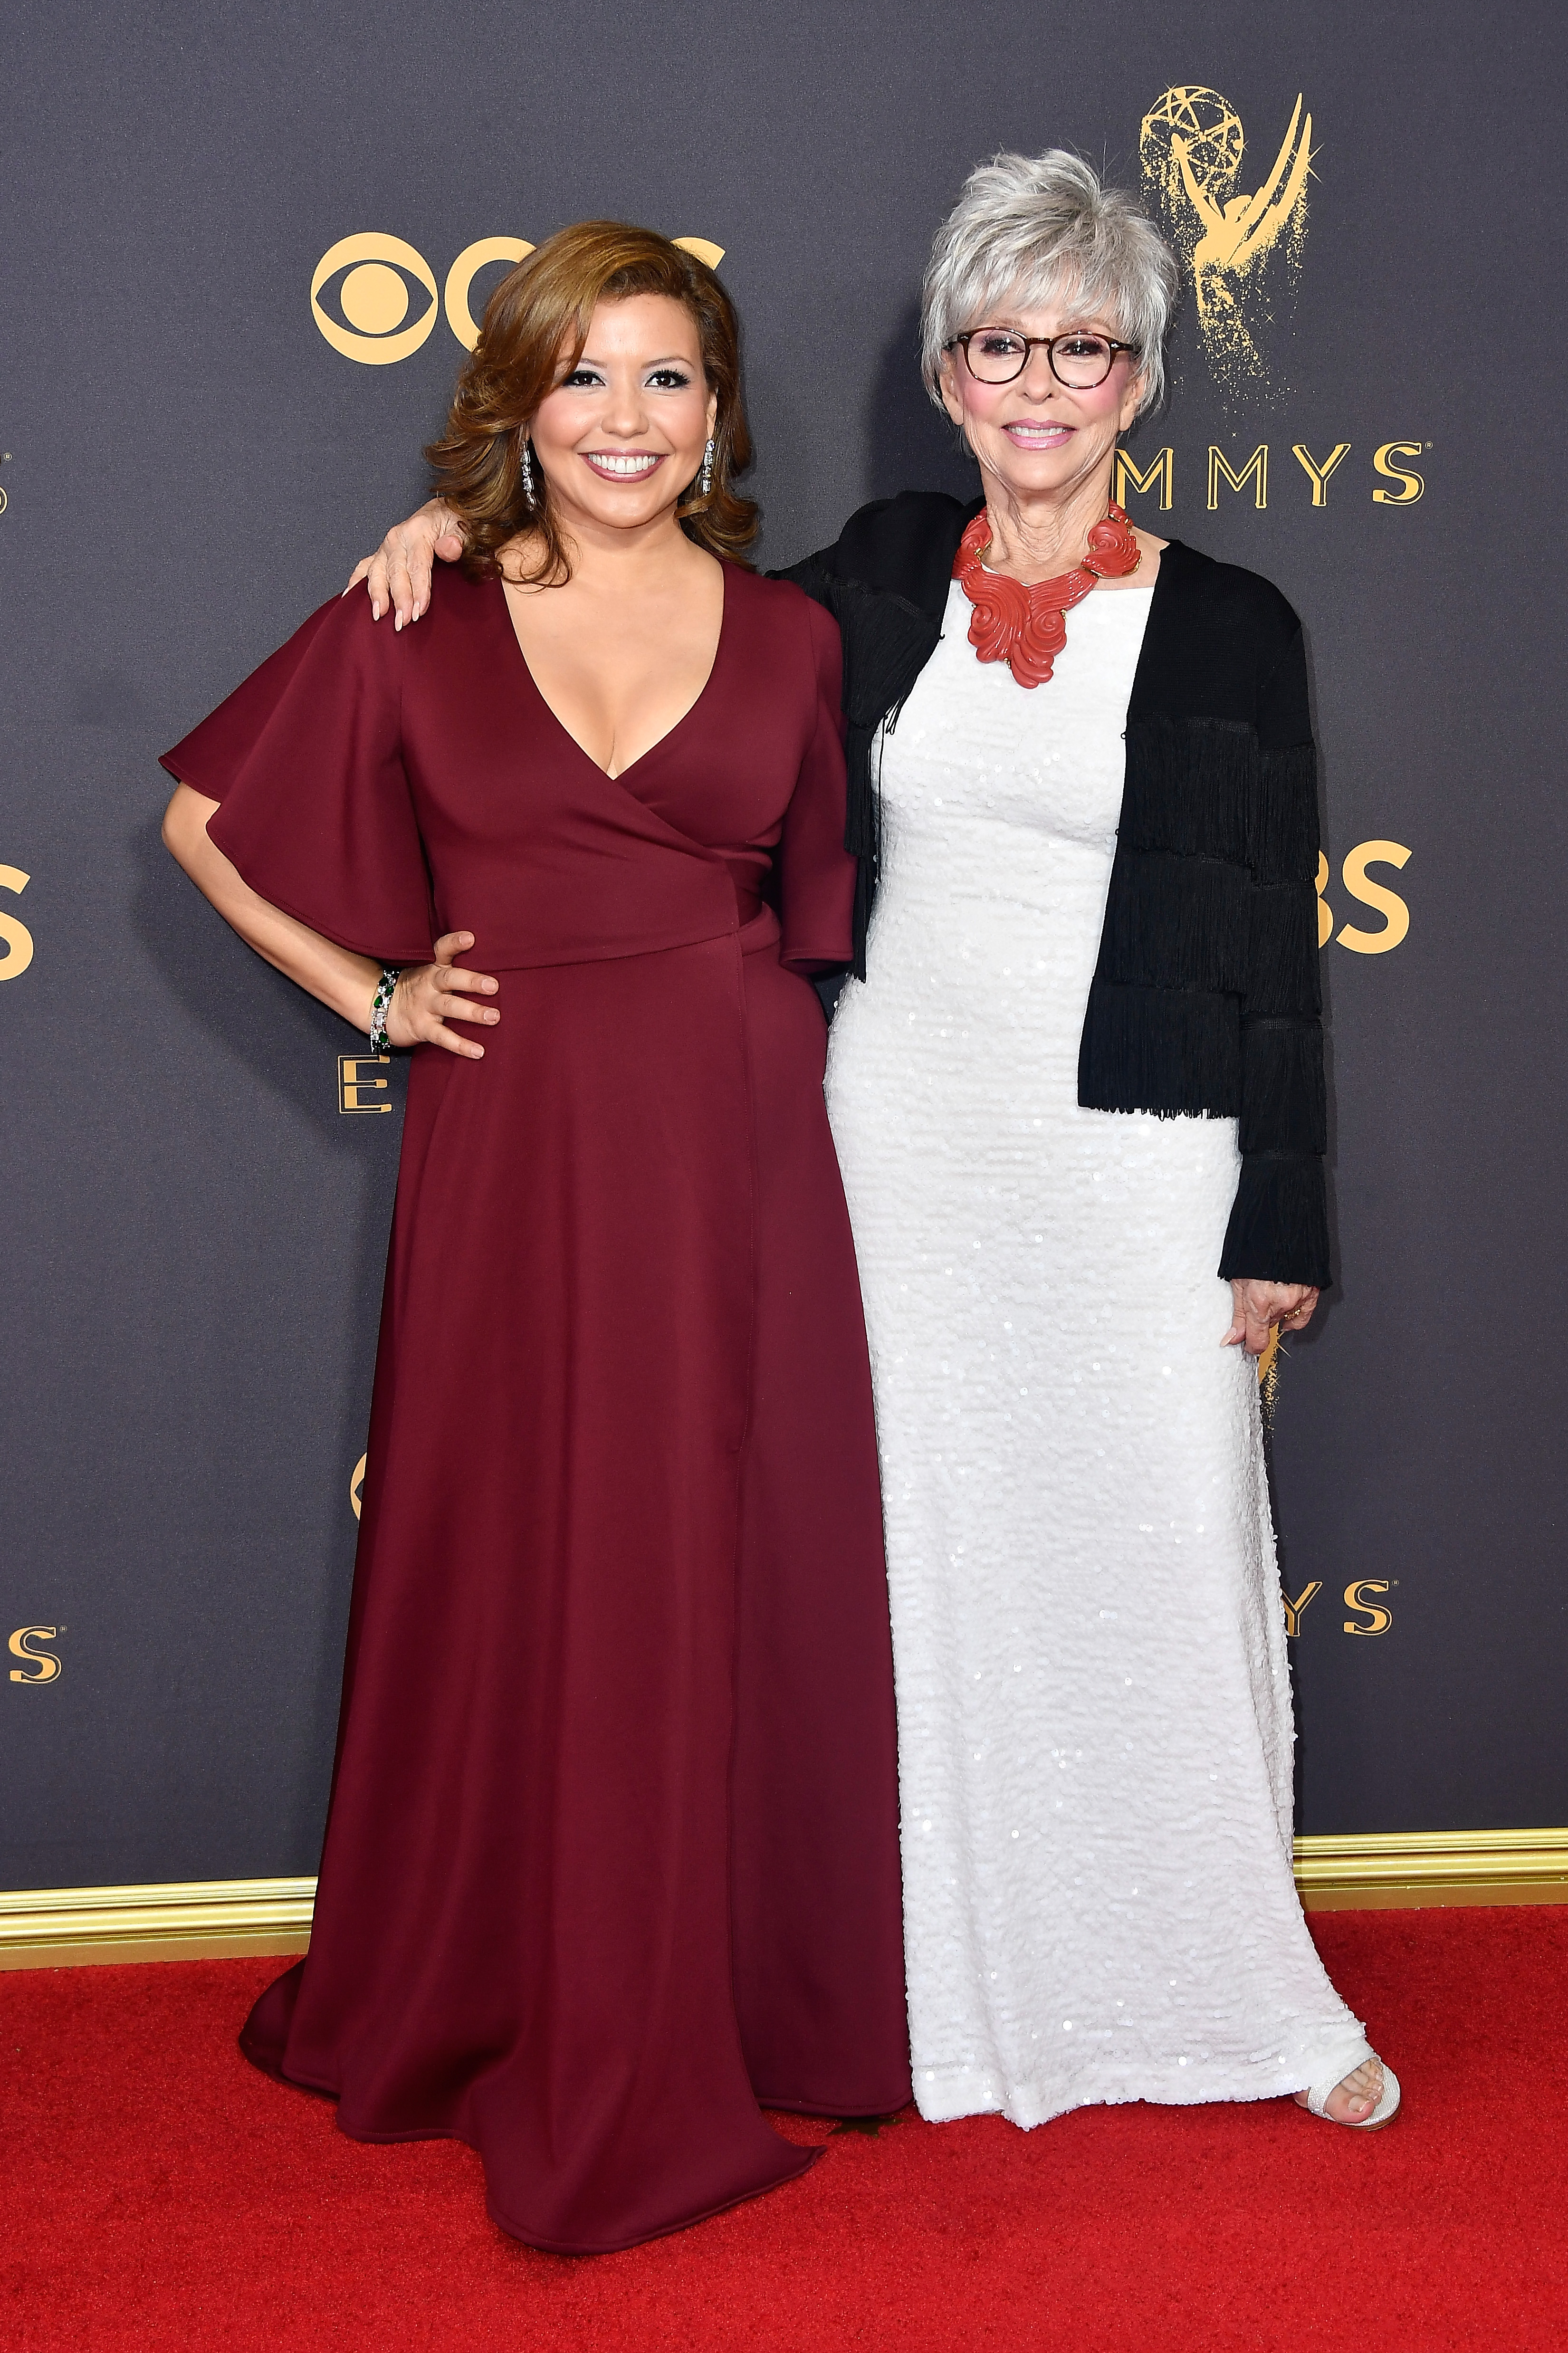 Actors Justina Machado and Rita Moreno attend the 69th Annual Primetime Emmy Awards at Microsoft Theater on Sept. 17, 2017 in Los Angeles.